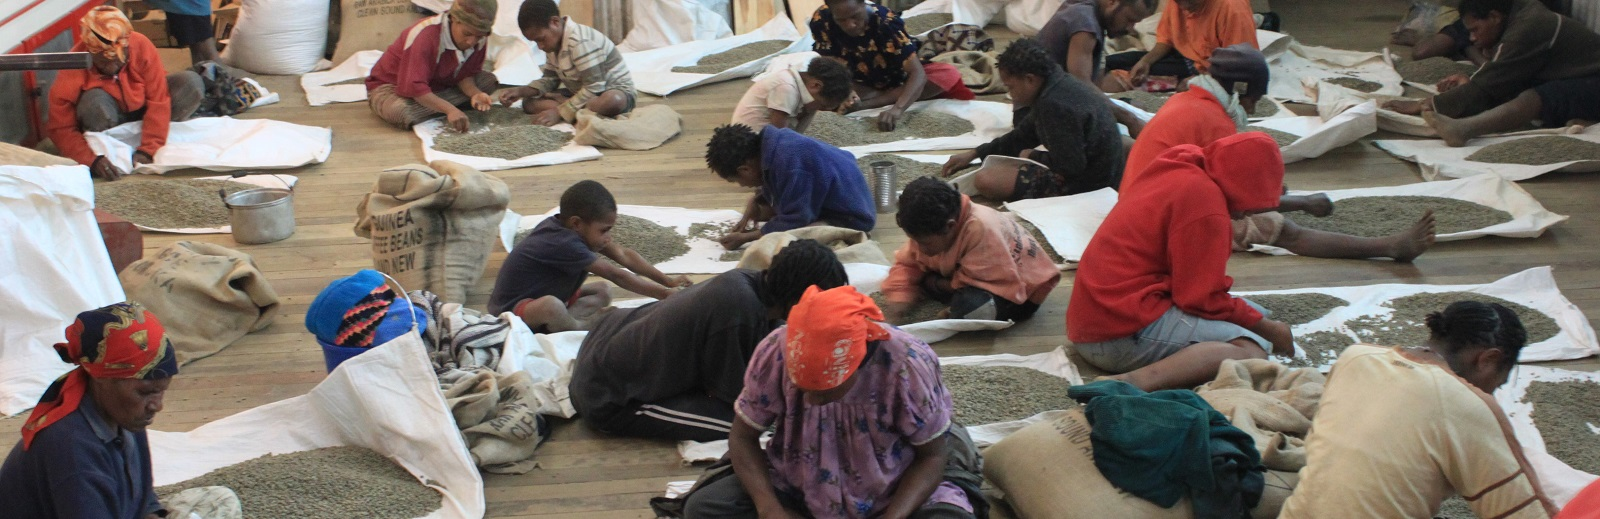 Hand-sorting coffee beans at the Baroida coffee plantation in PNG (Photo: Flickr/counterculturecoffee)